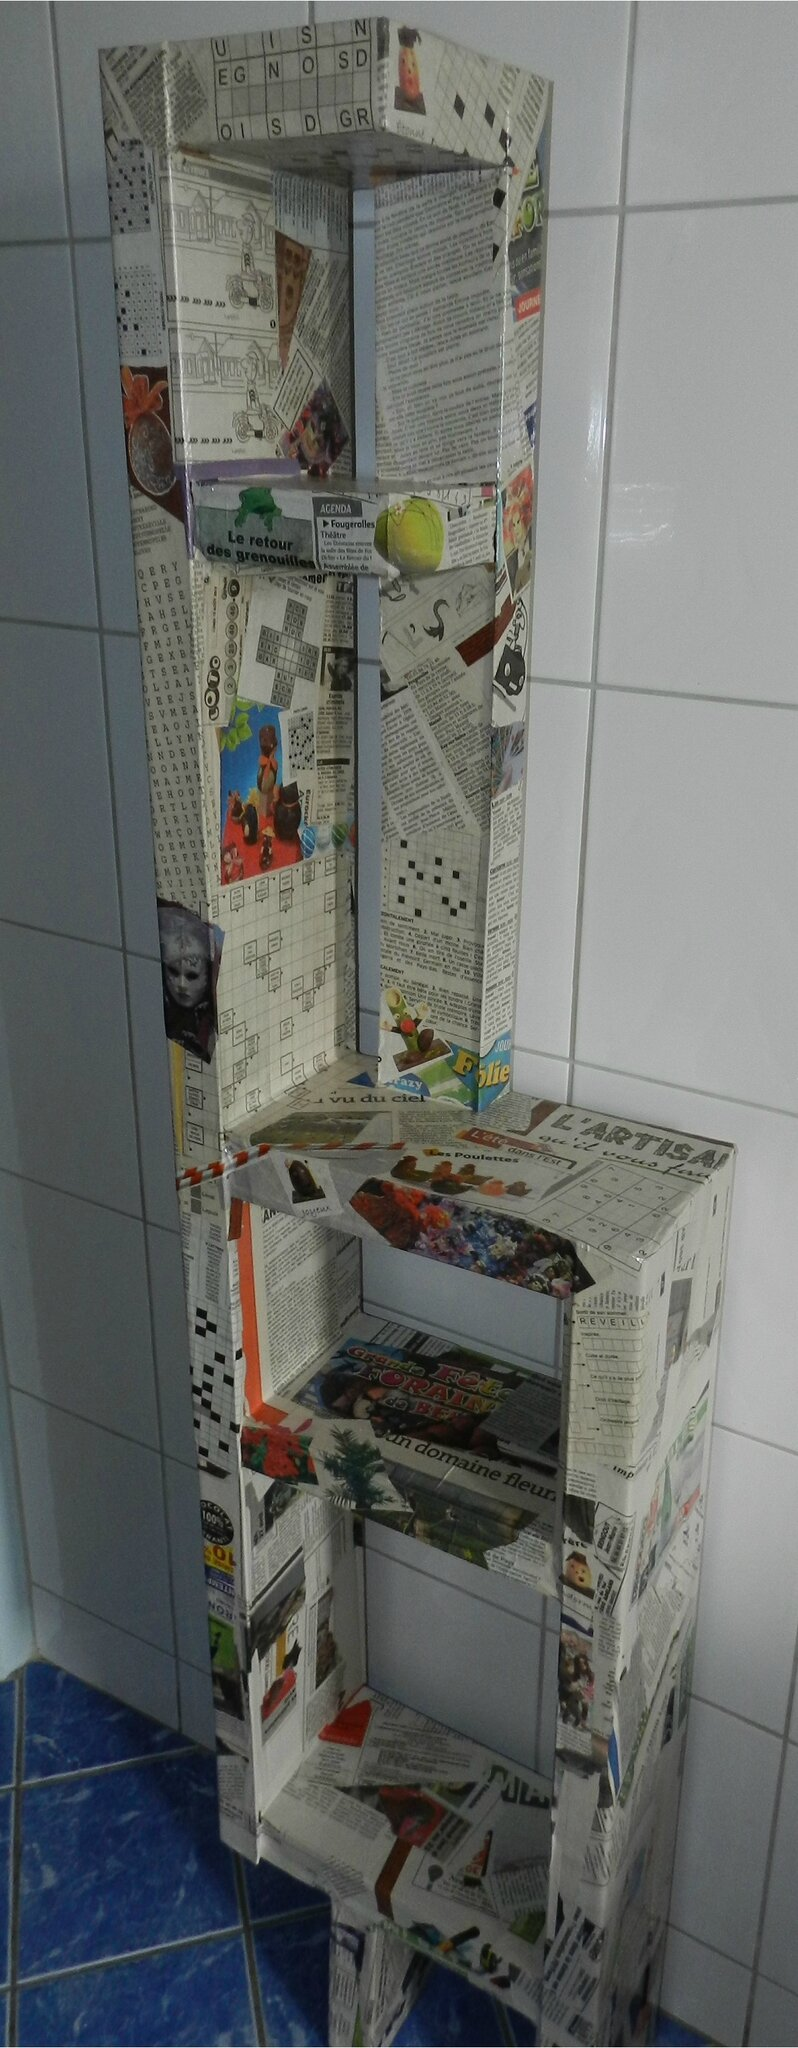 etag re journal le blog note de stef. Black Bedroom Furniture Sets. Home Design Ideas